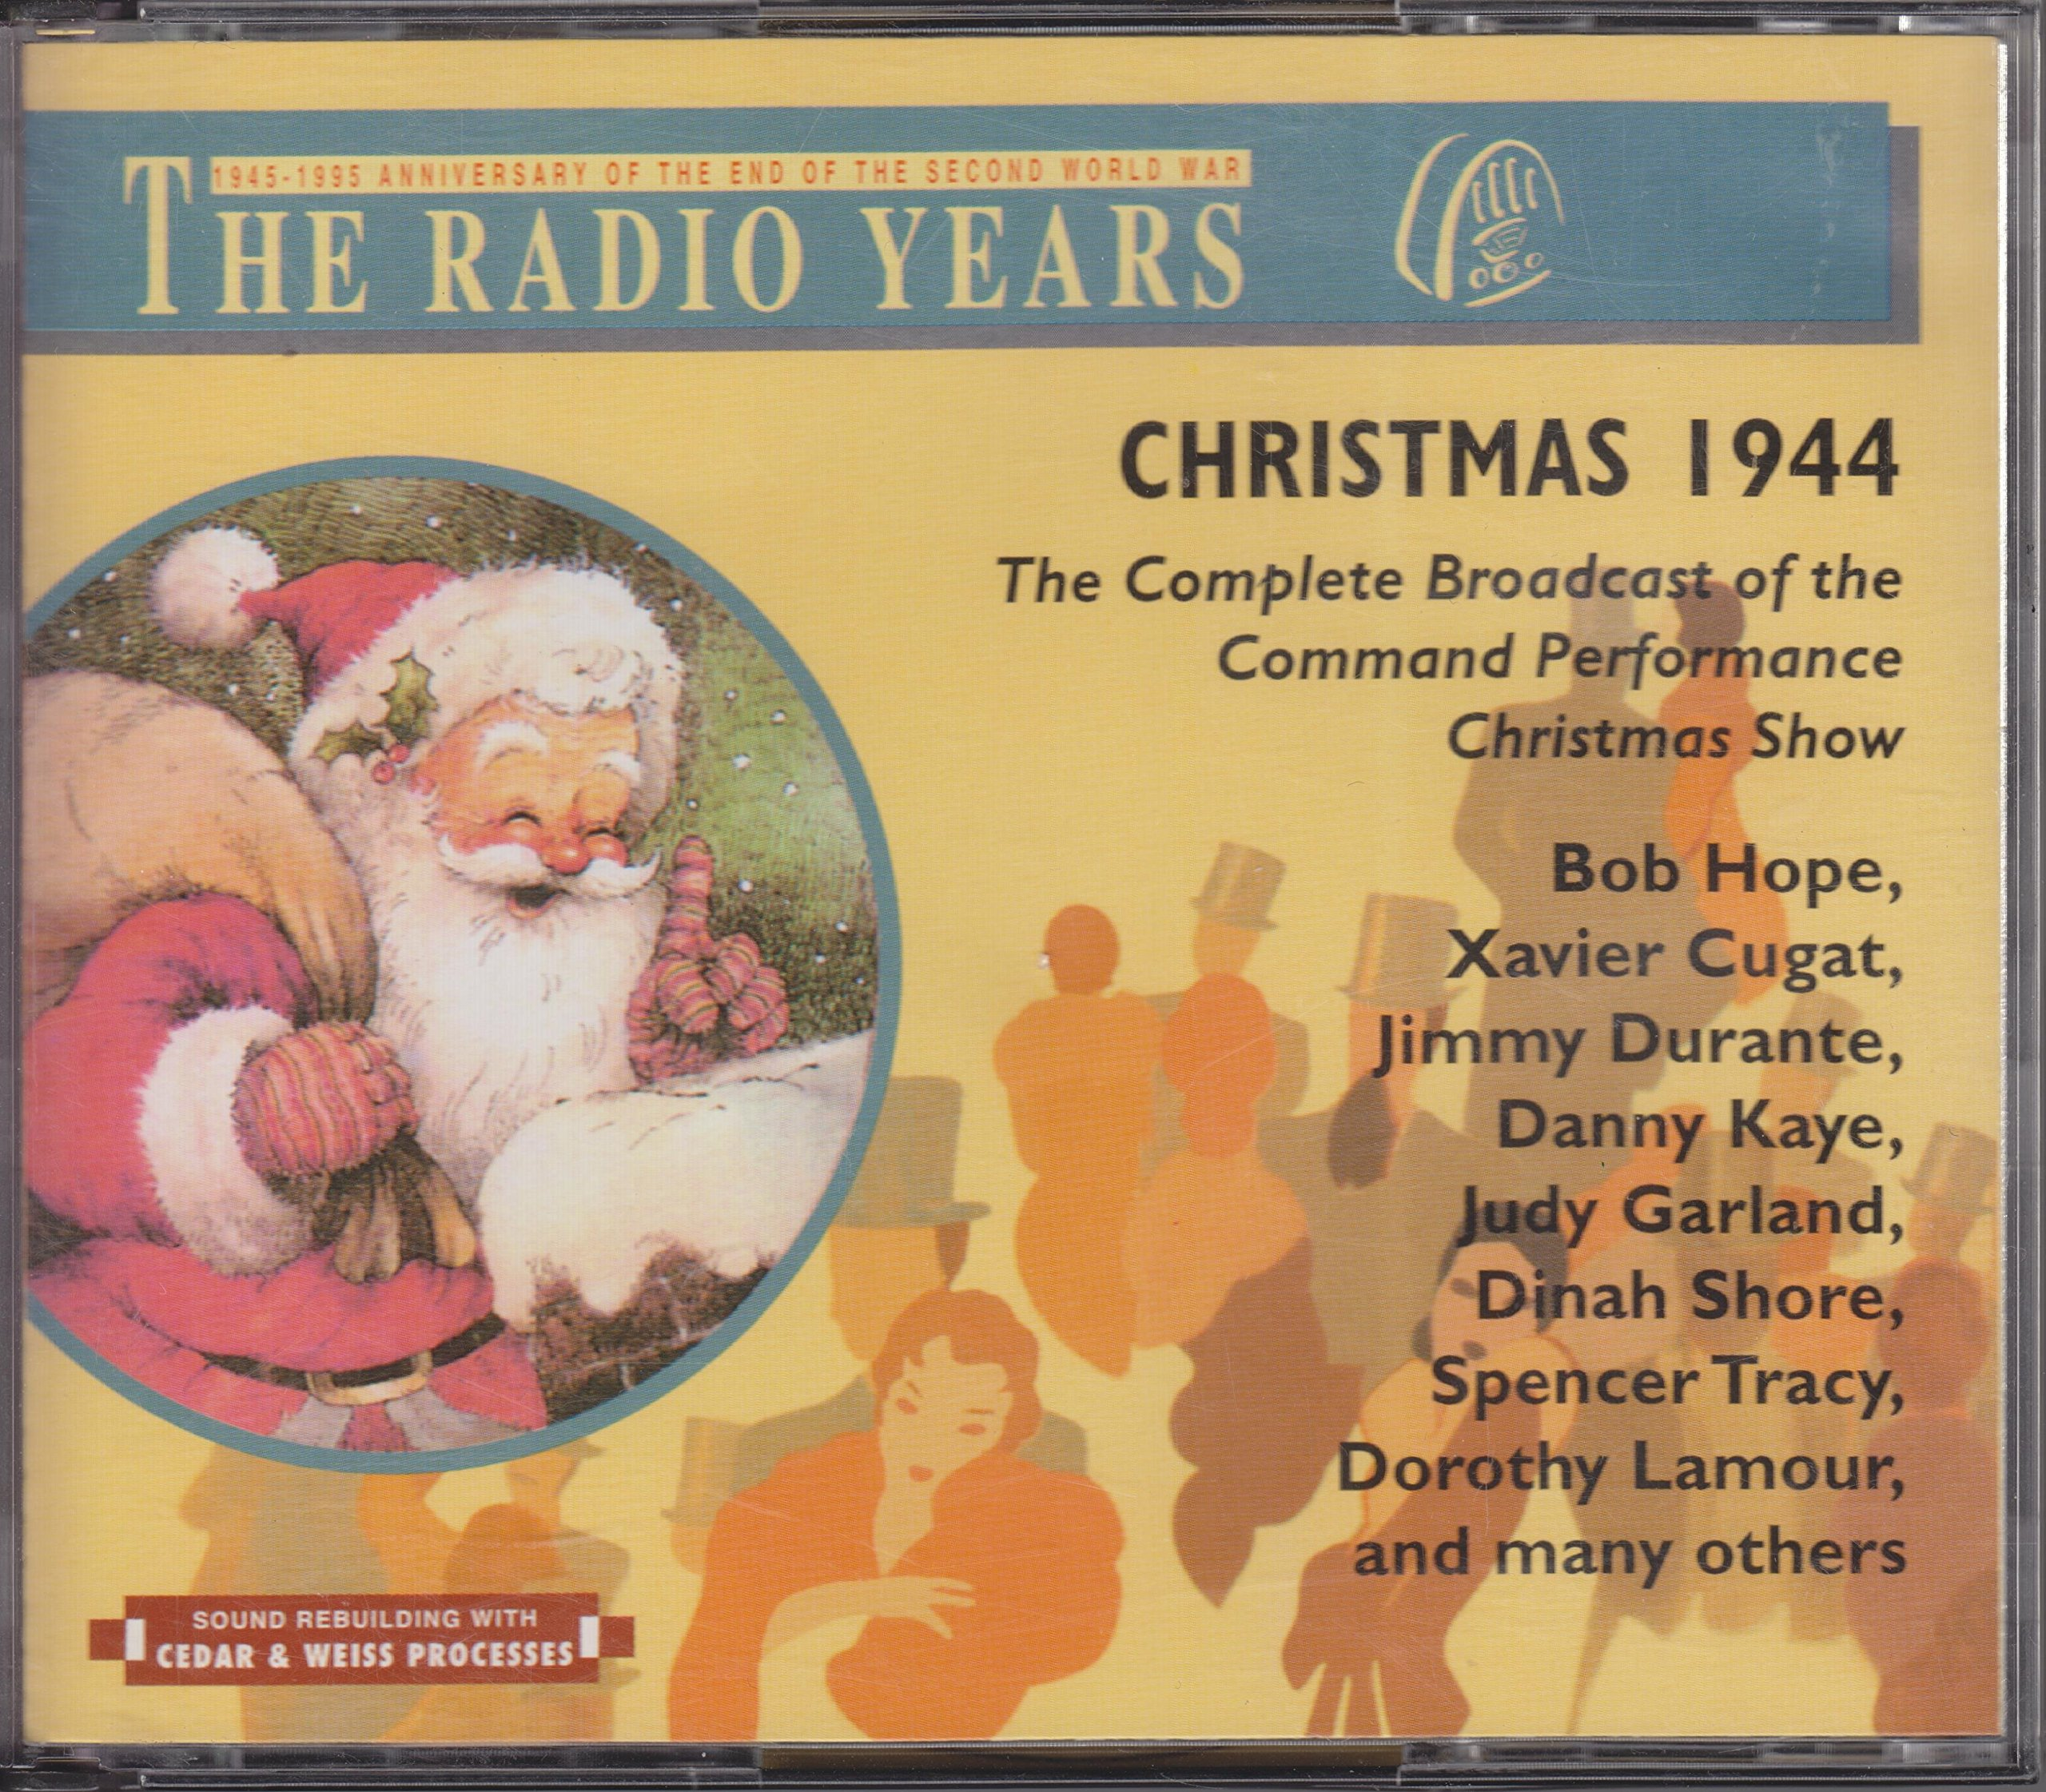 Christmas 1944: The Complete Broadcast of the Command Performance Christmas Show